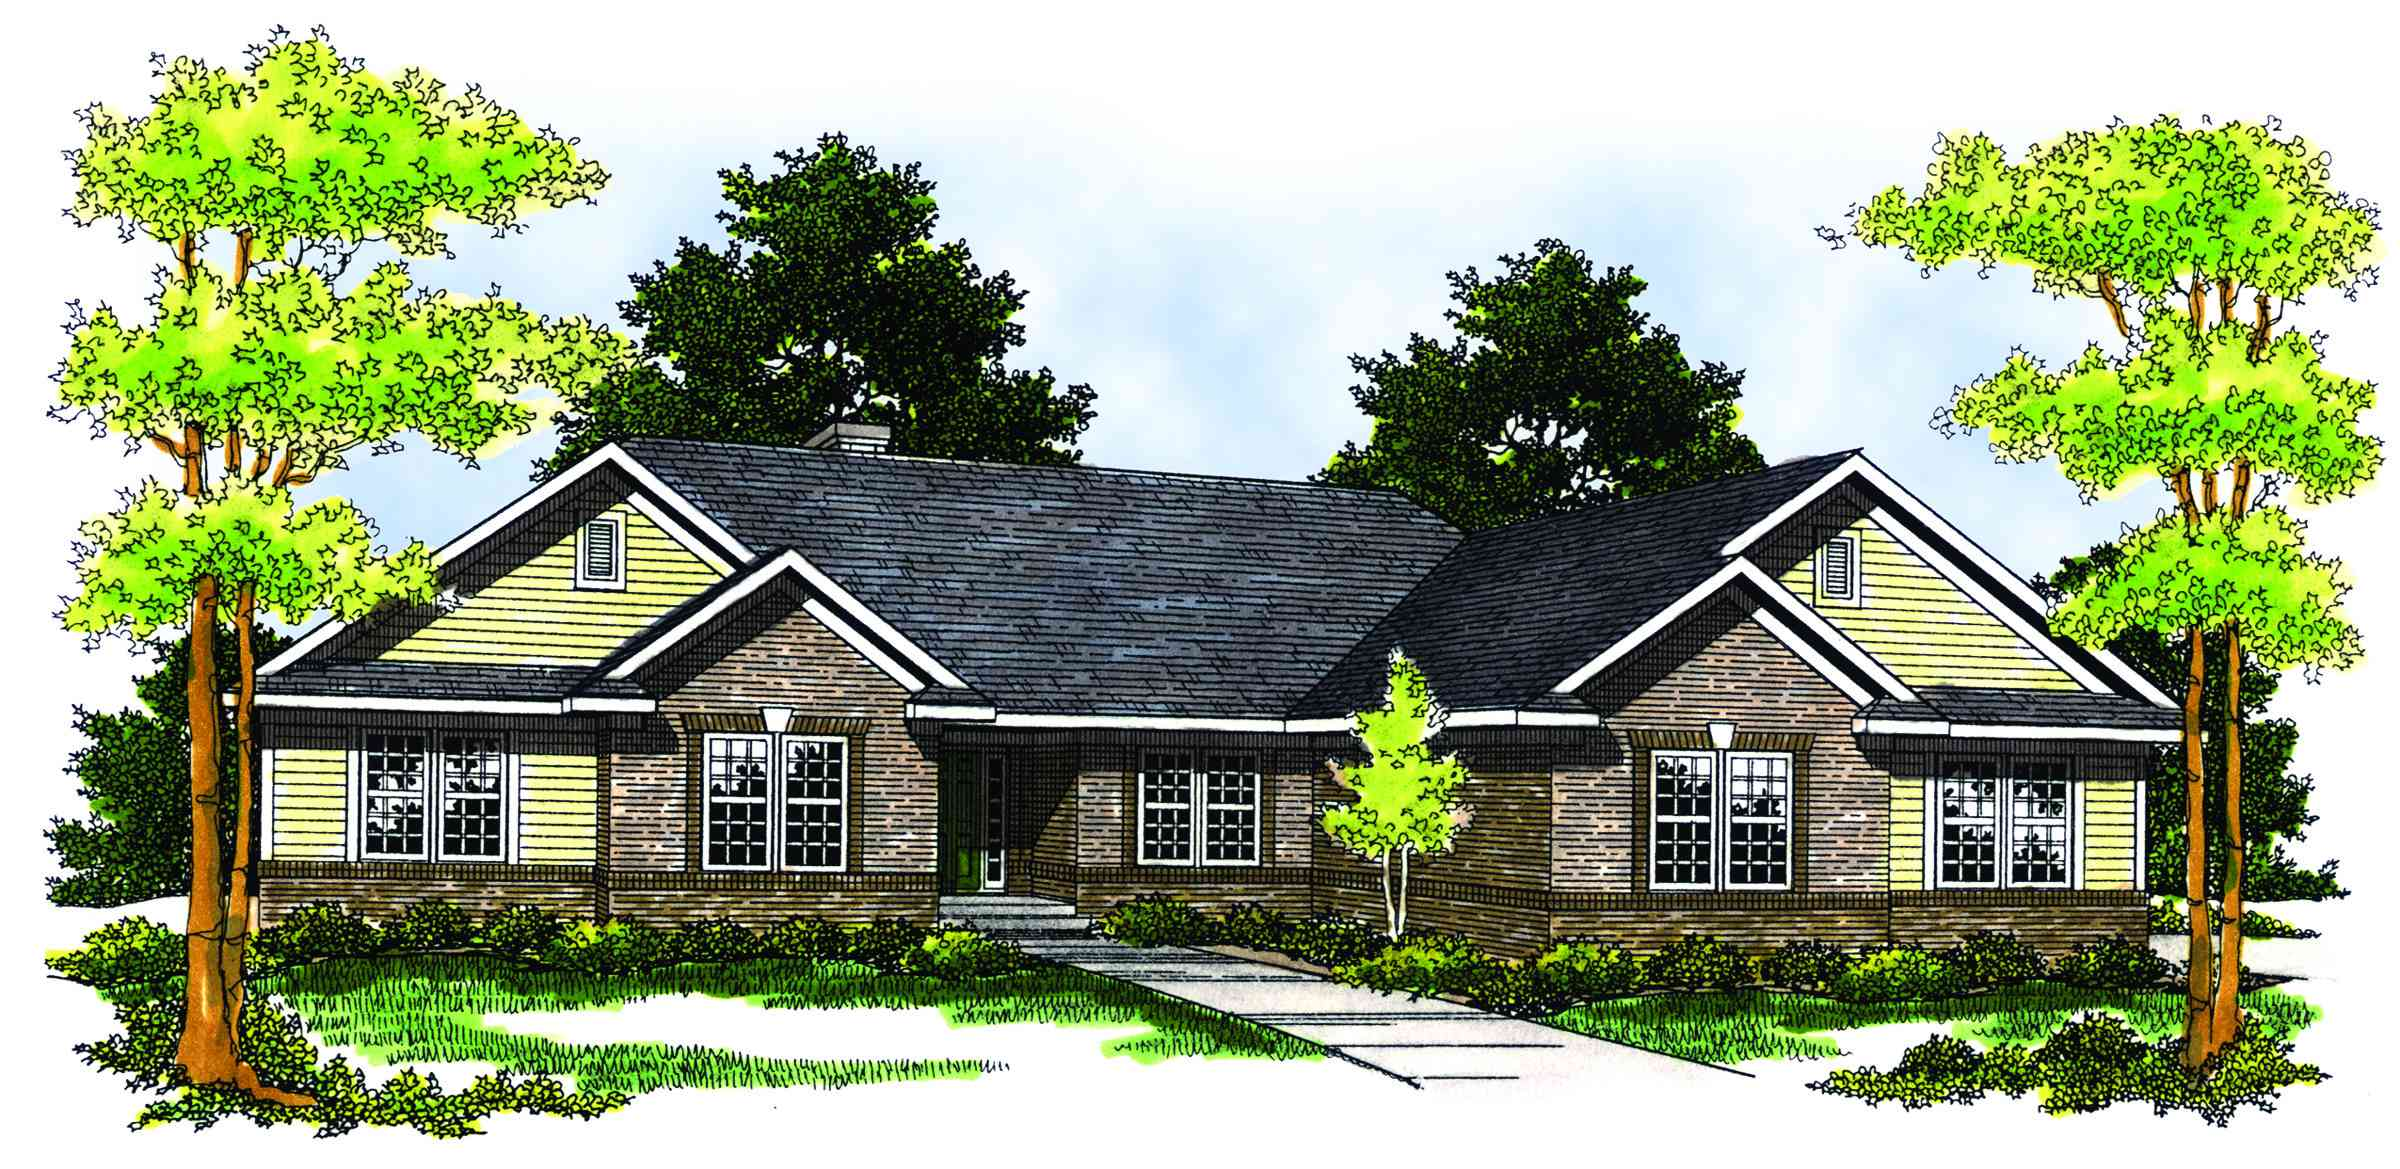 Luxurious traditional ranch 89162ah architectural for Traditional ranch house plans